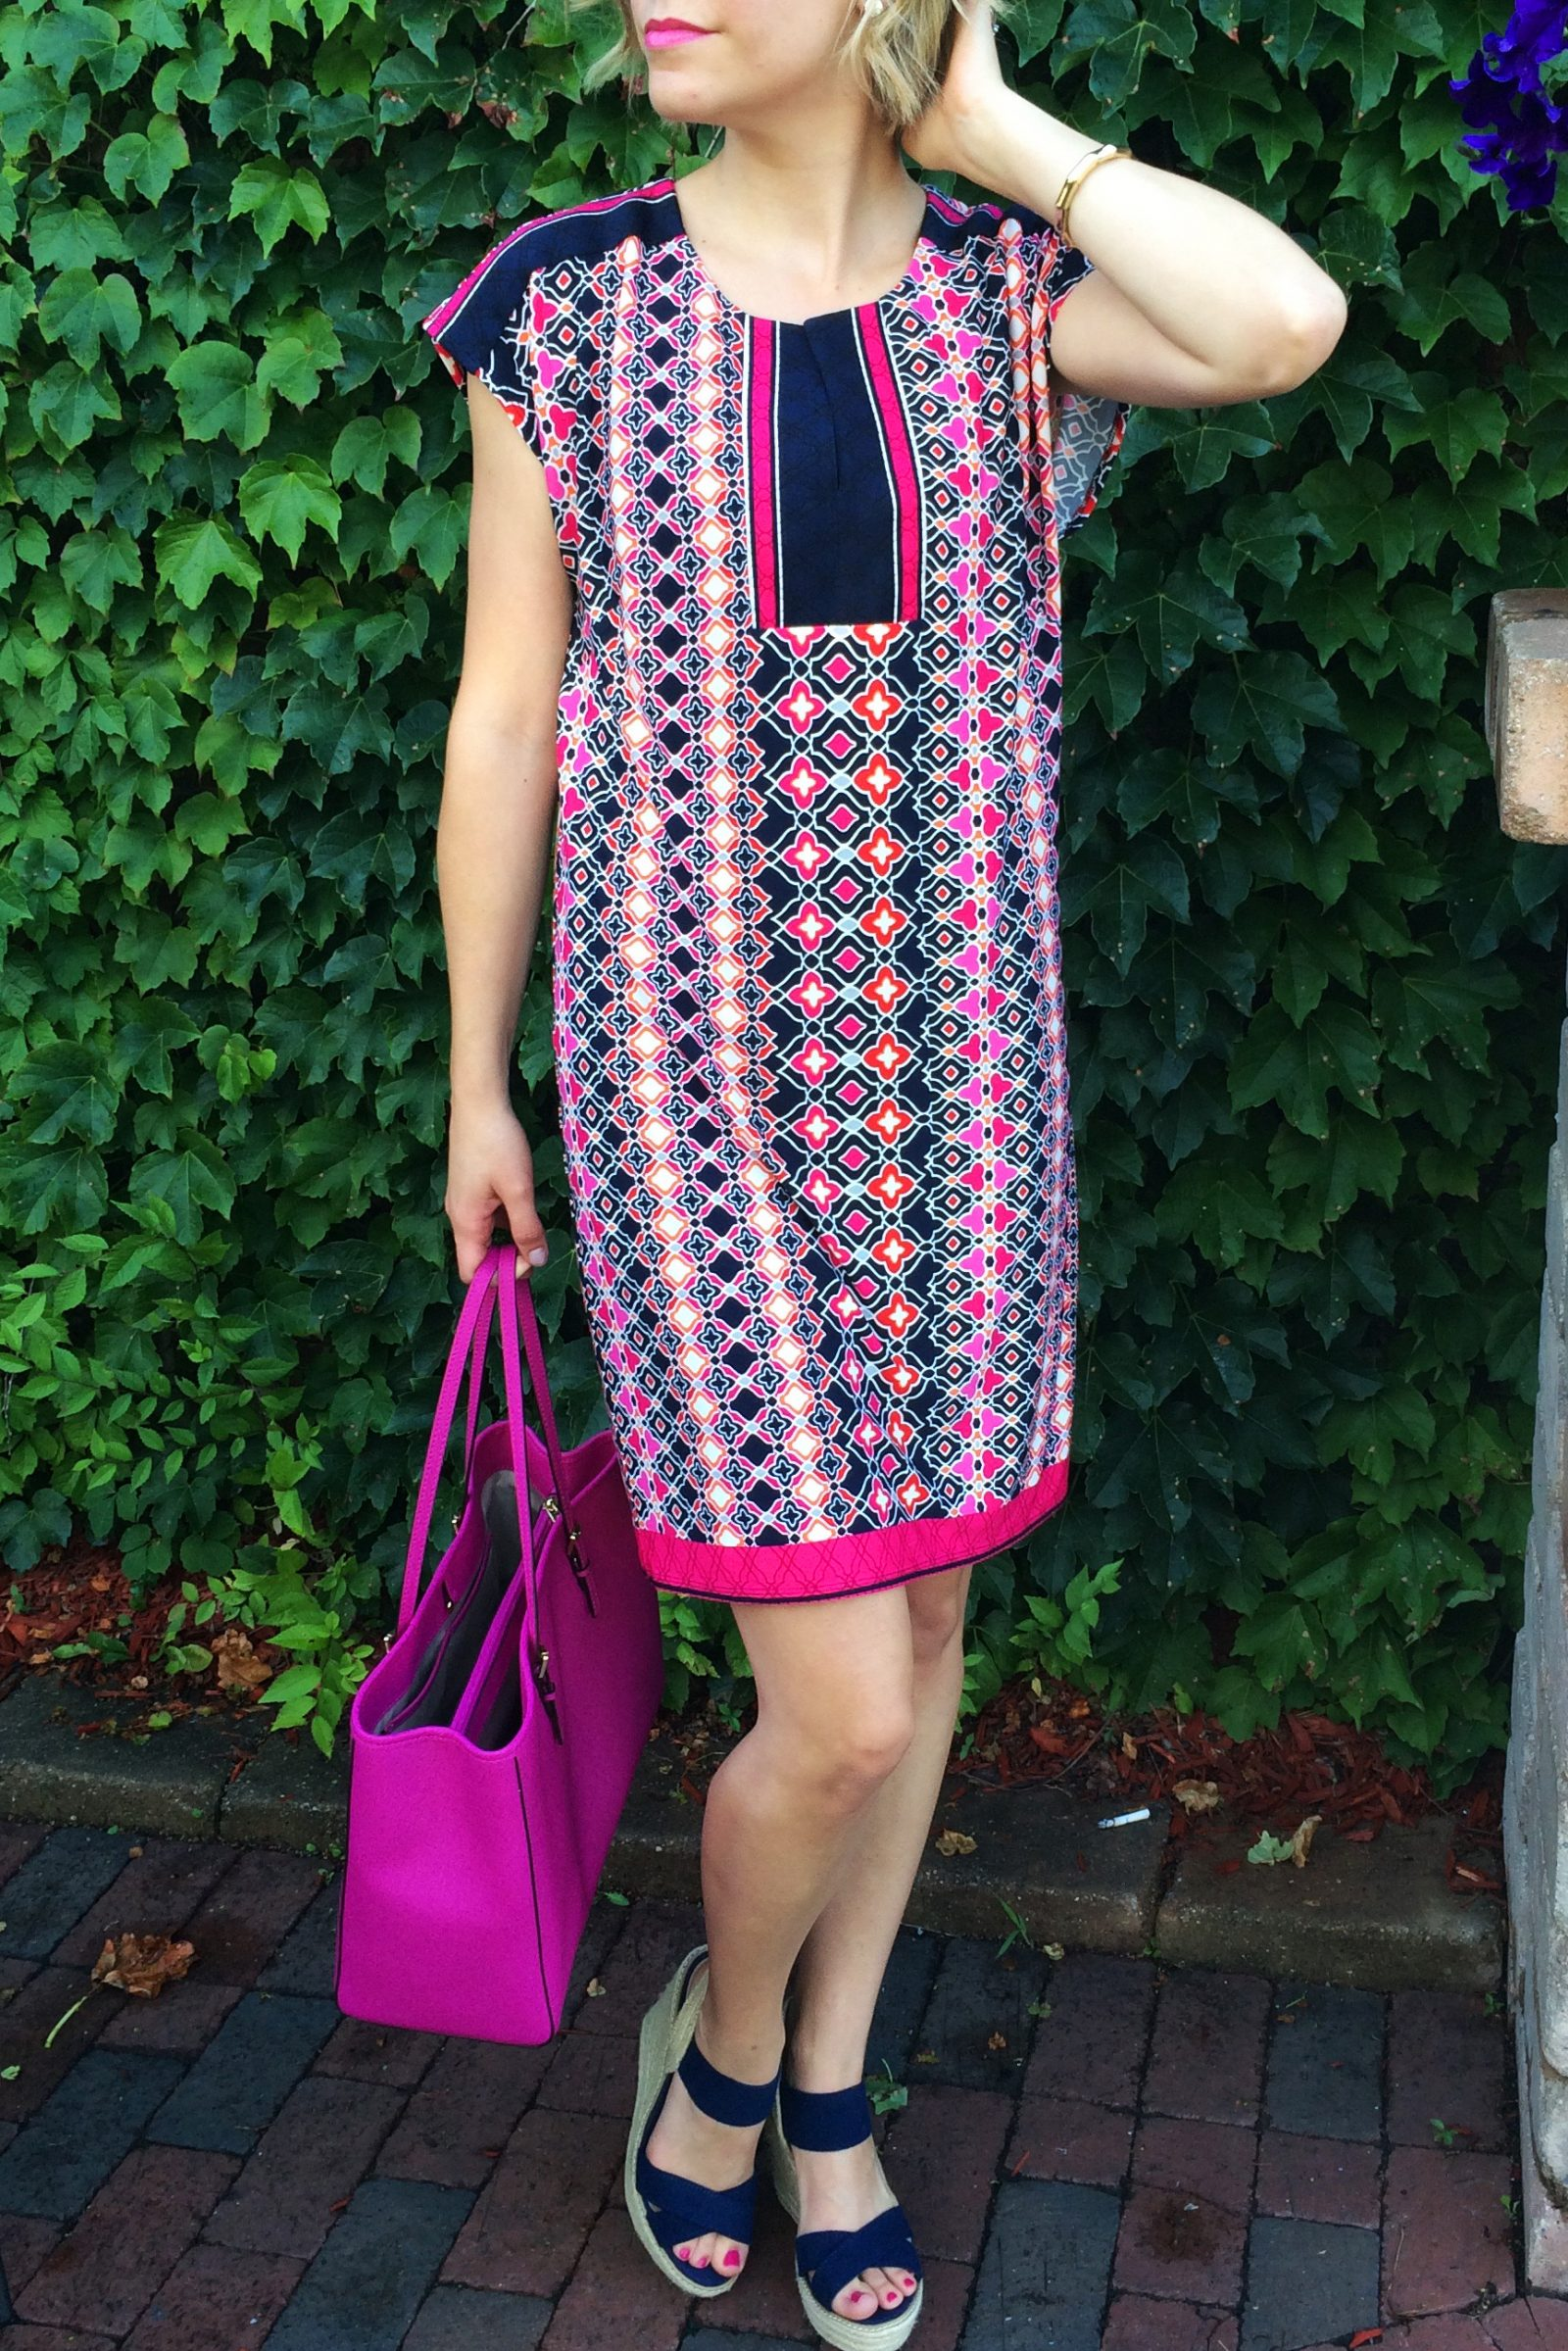 Bright pink and navy blue shift dress. Pattern dress. Steve Madden wedges, Michael Kors Purse. Find more great outfit ideas at Embellishmints.com